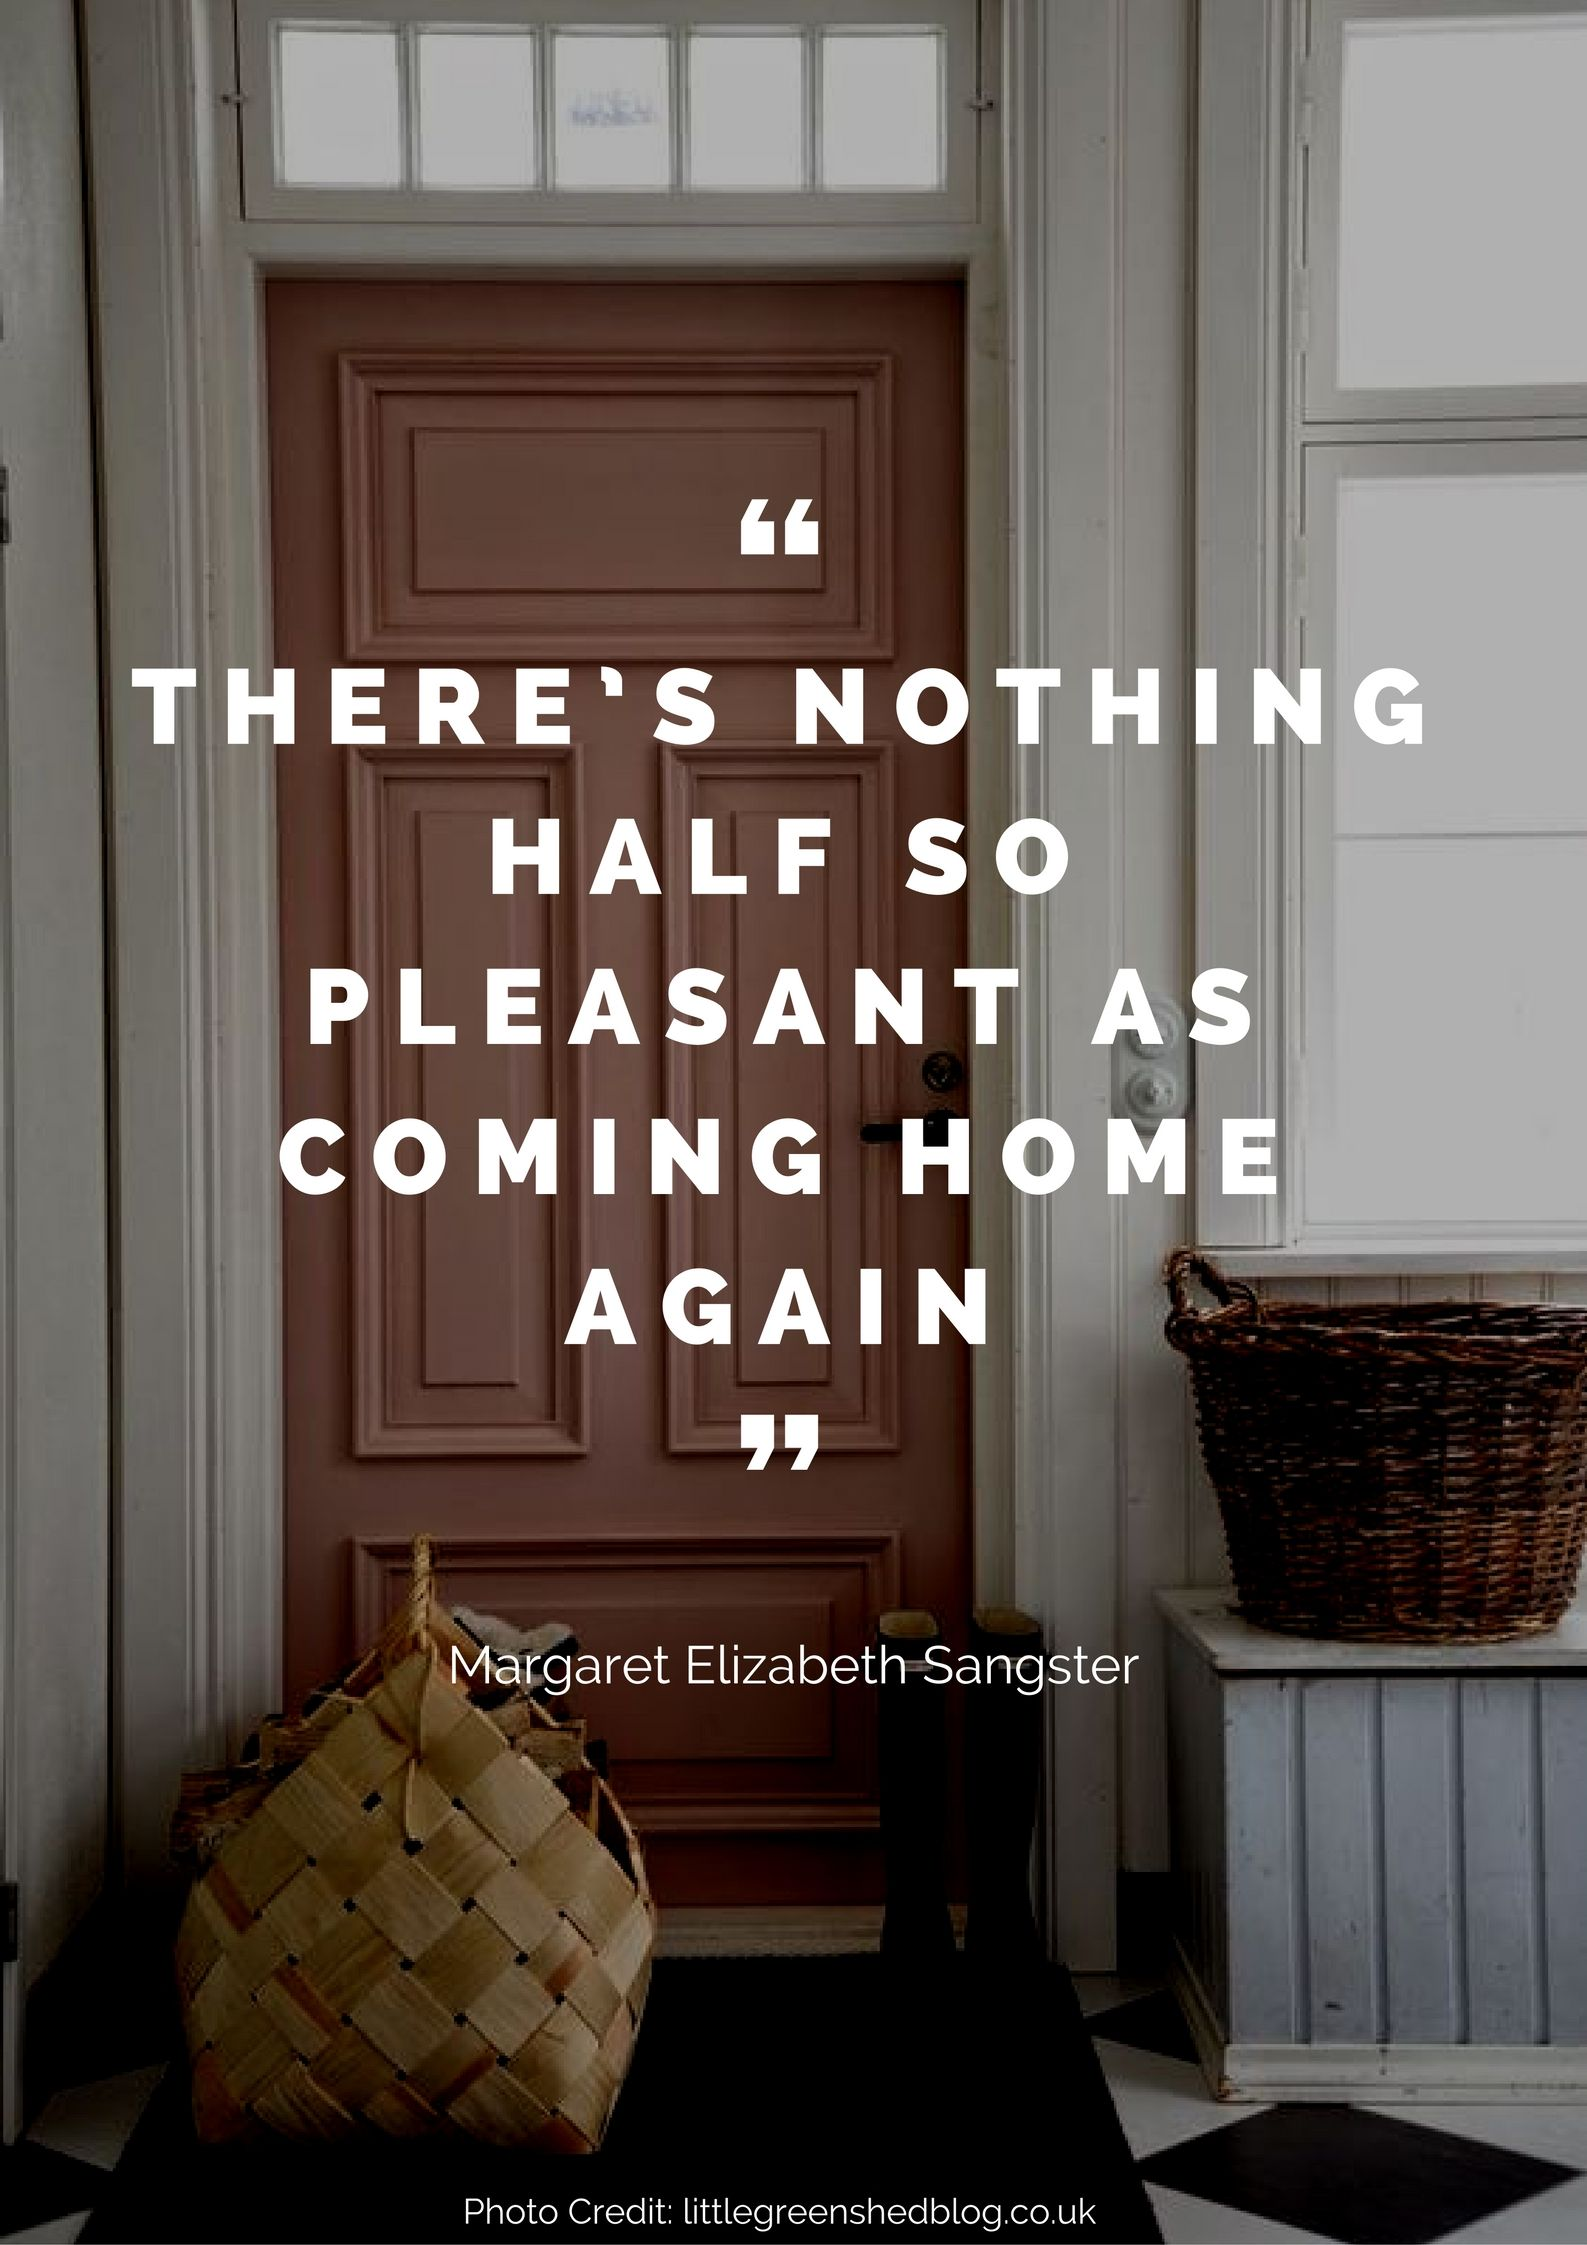 36 Beautiful Quotes About Home Home Decor Quotes Home Quotes And Sayings Coming Home Quotes